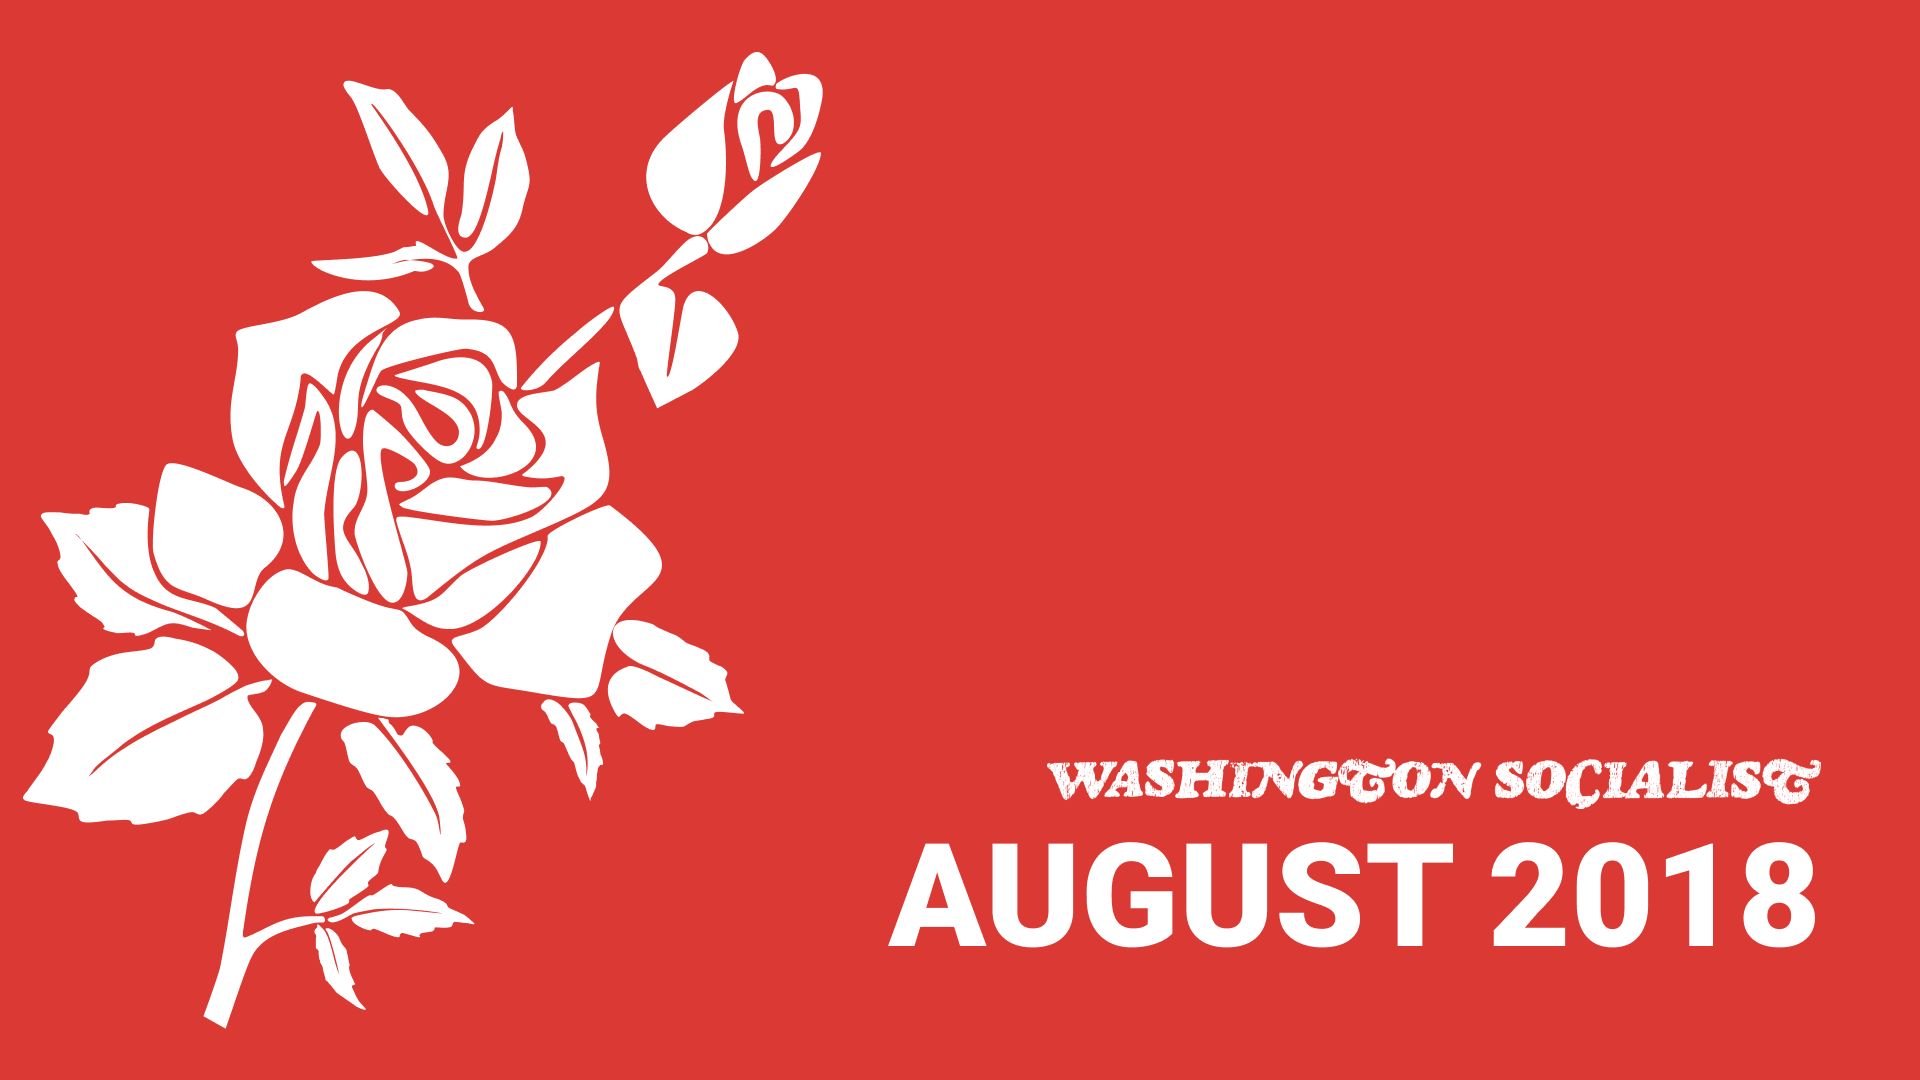 Washington Socialist Cover, August 2018